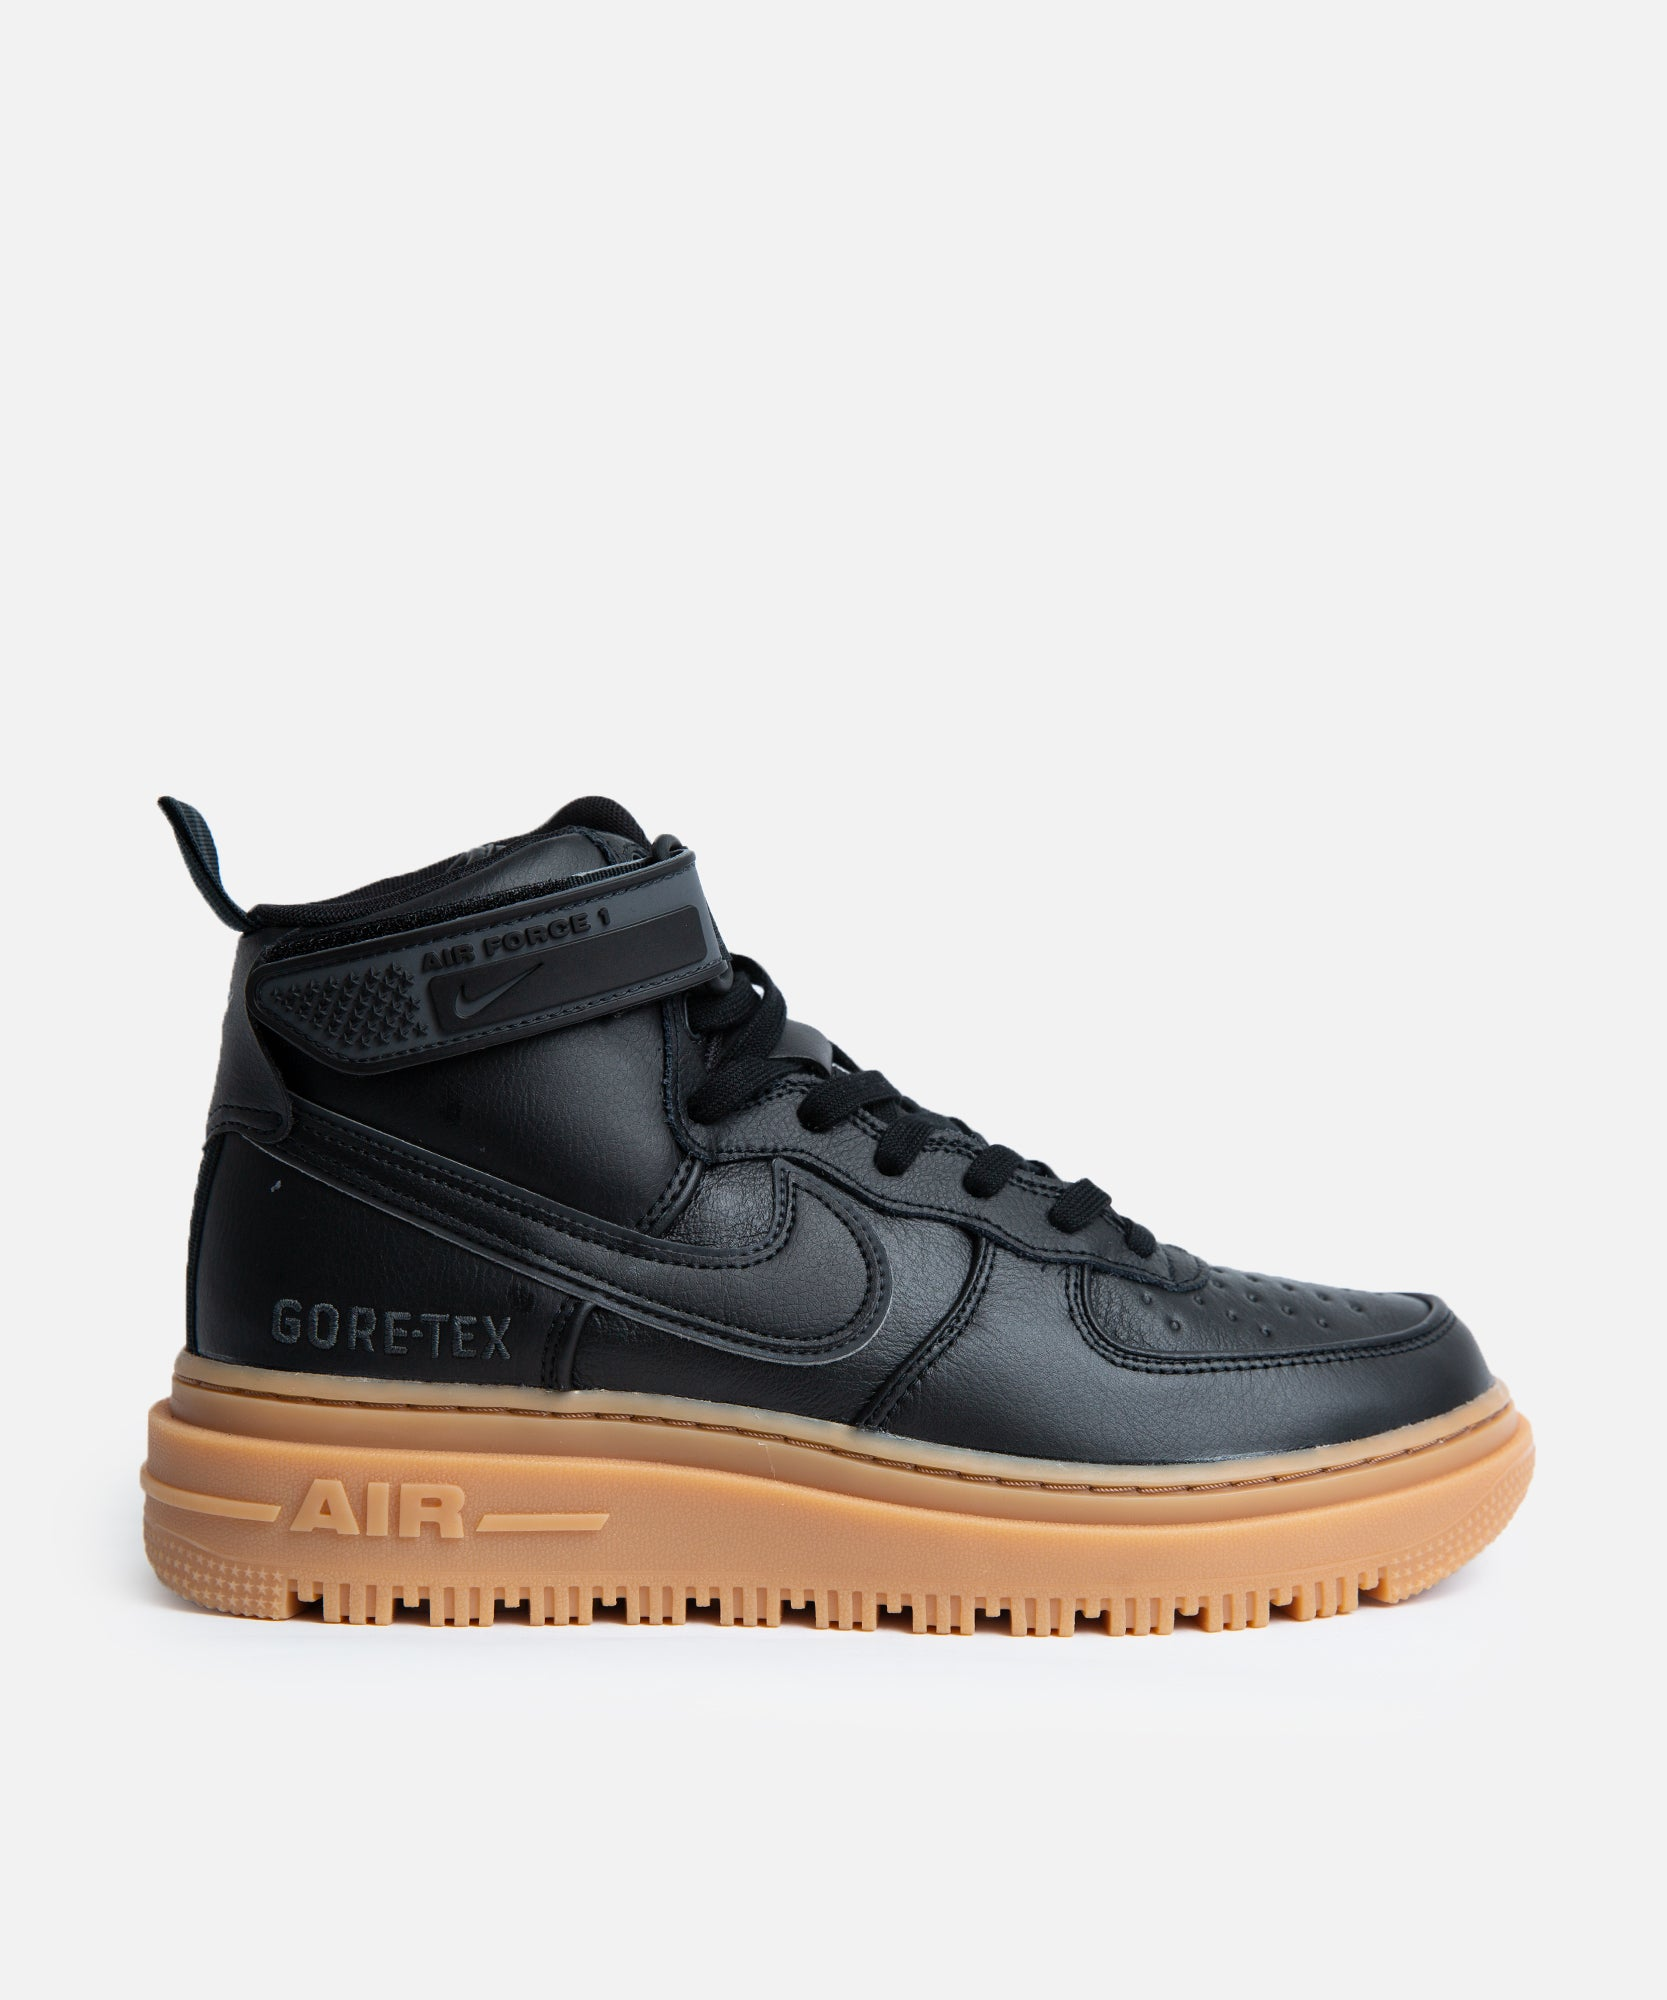 Nike Air Force 1 GTX Boot (Black/Black-Anthracite-Gum Med Brown)